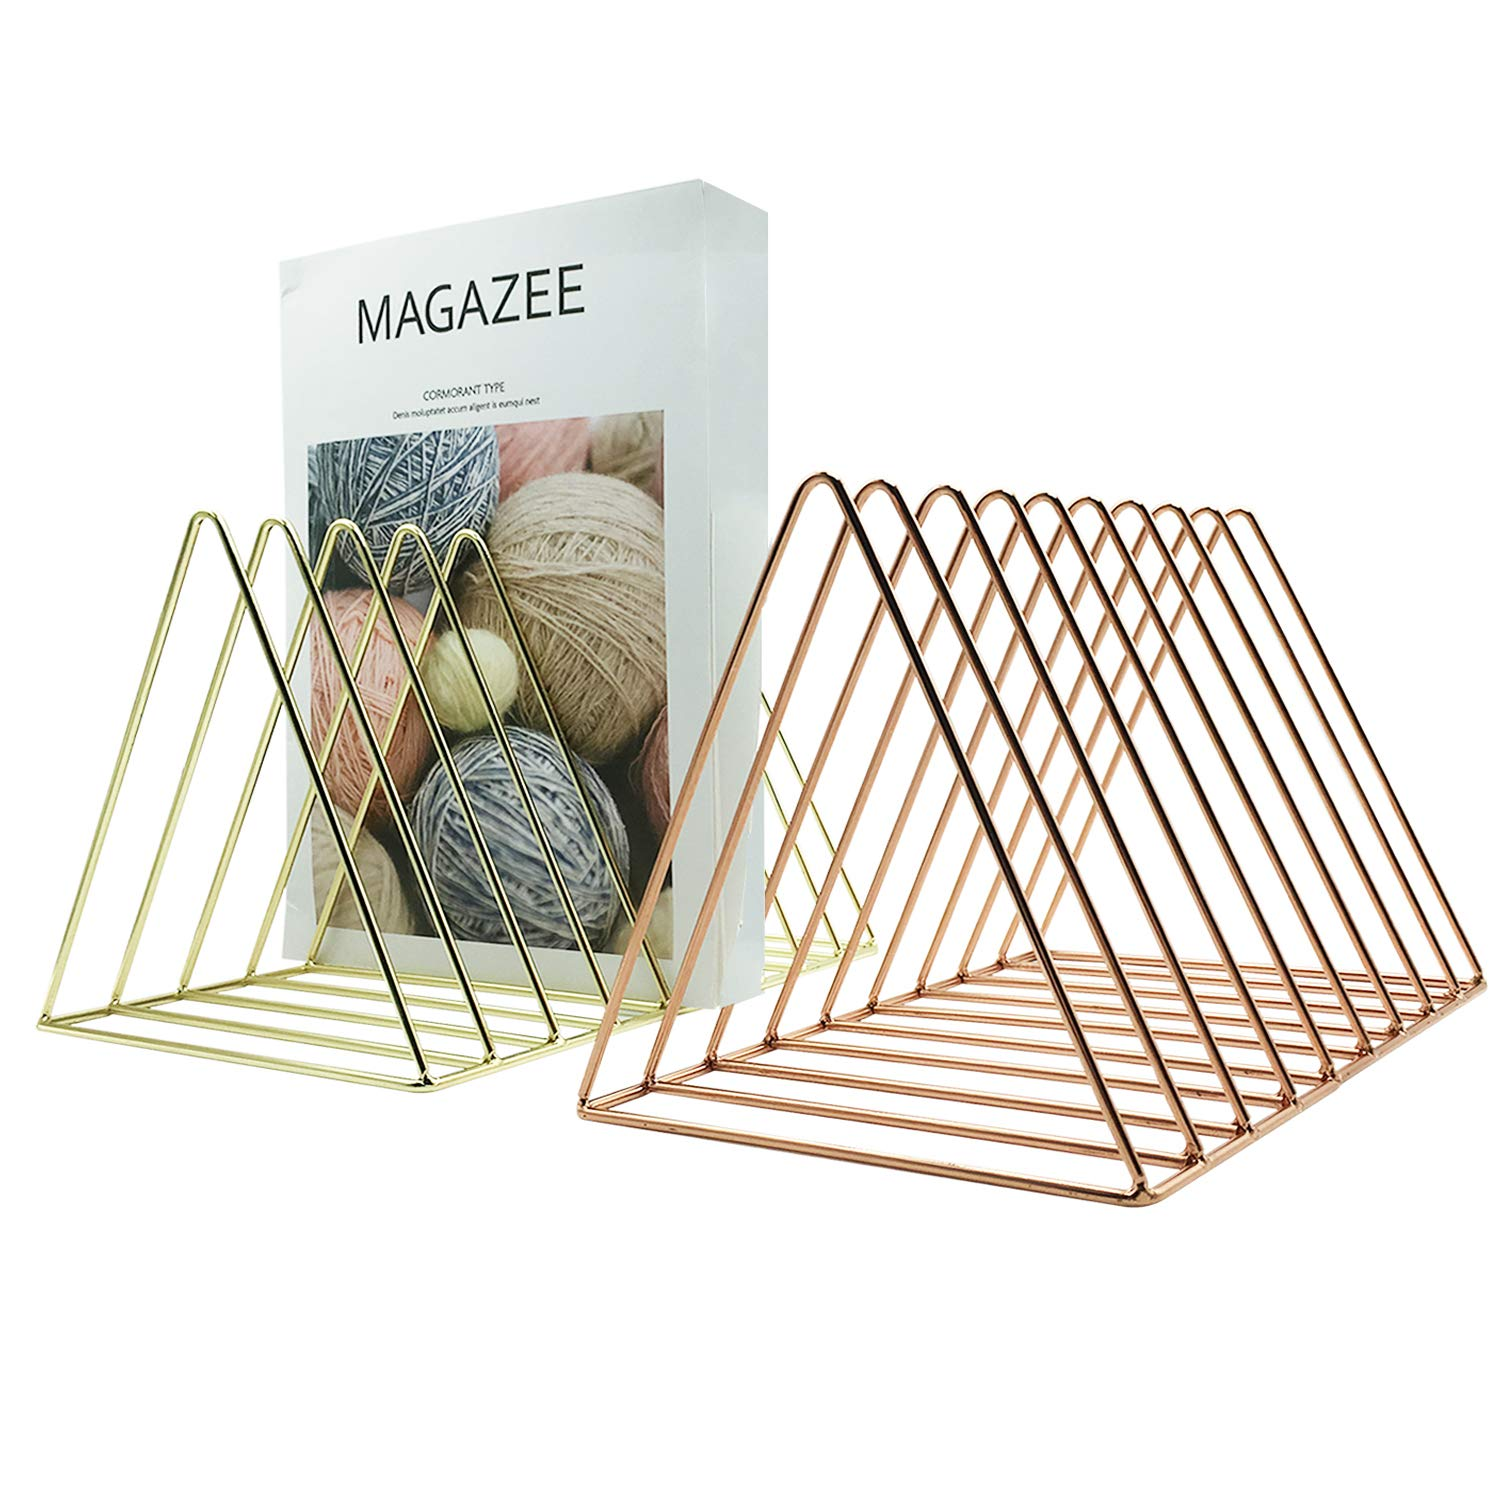 Reliancer File Organizer Triangle Iron Desktop Storage Book Rack Bookshelf Copper Magazine Newspaper Holder Art Desktop Organizer Wire Collection 9 Section for Office Home Decoration (Gold)